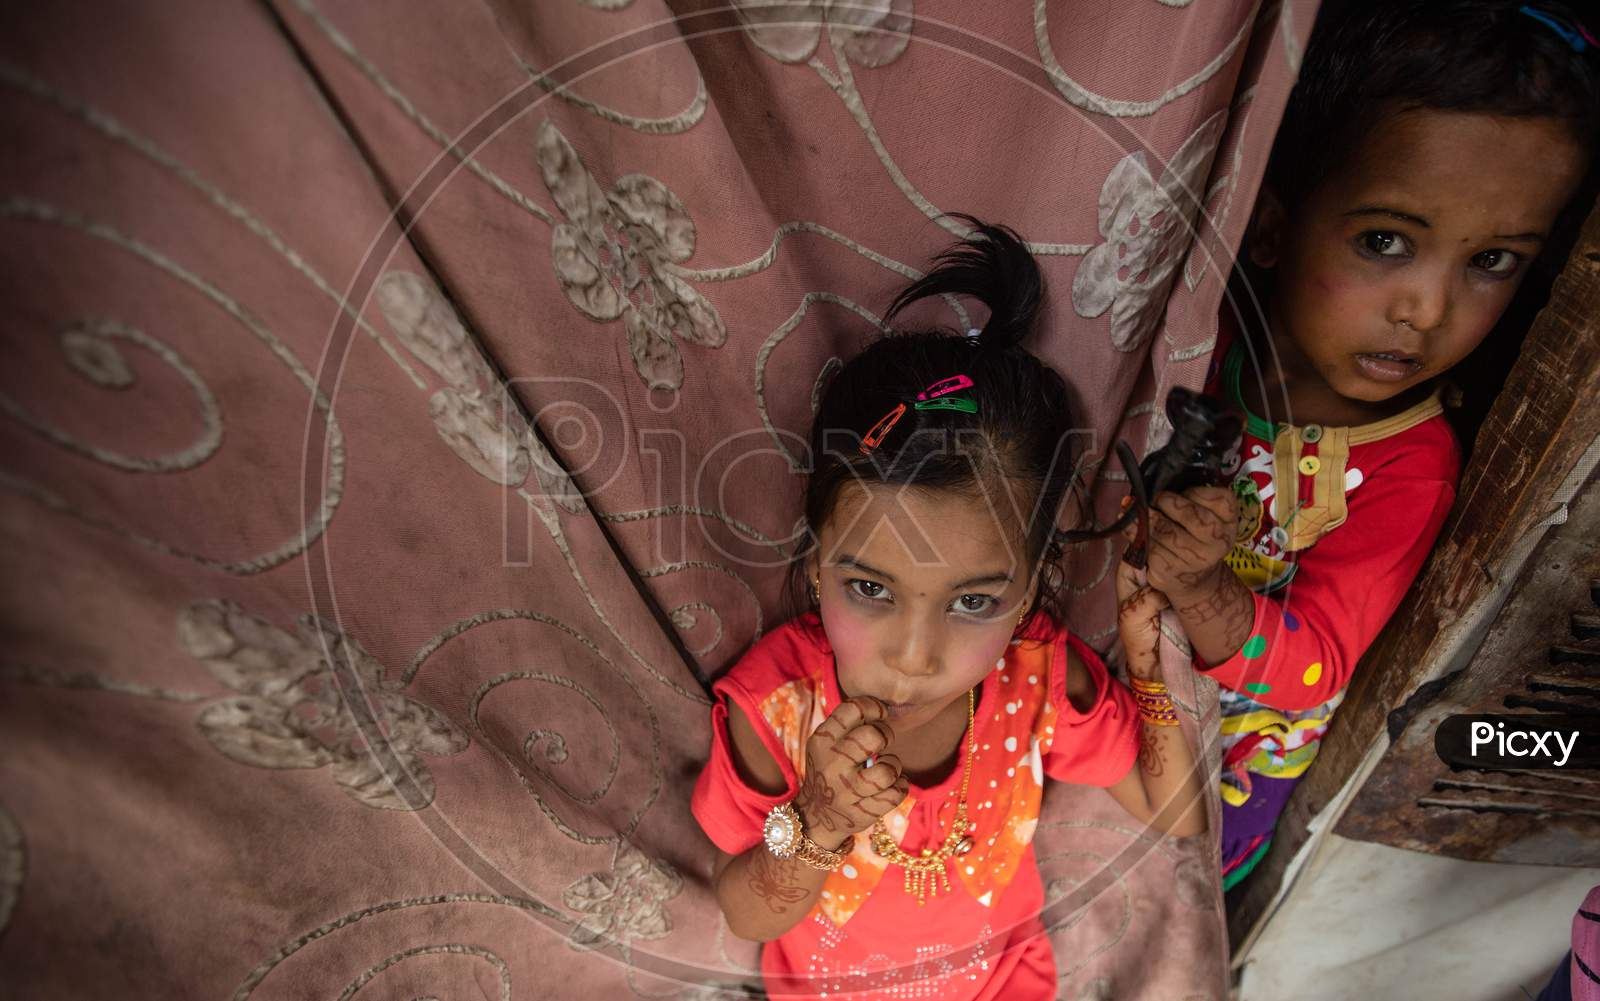 Rohingya refugee children wear new clothes and make up during Eid Al-Adha (Feast of Sacrifice) festival at a camp on the outskirts of New Delhi, India on August 1, 2020.